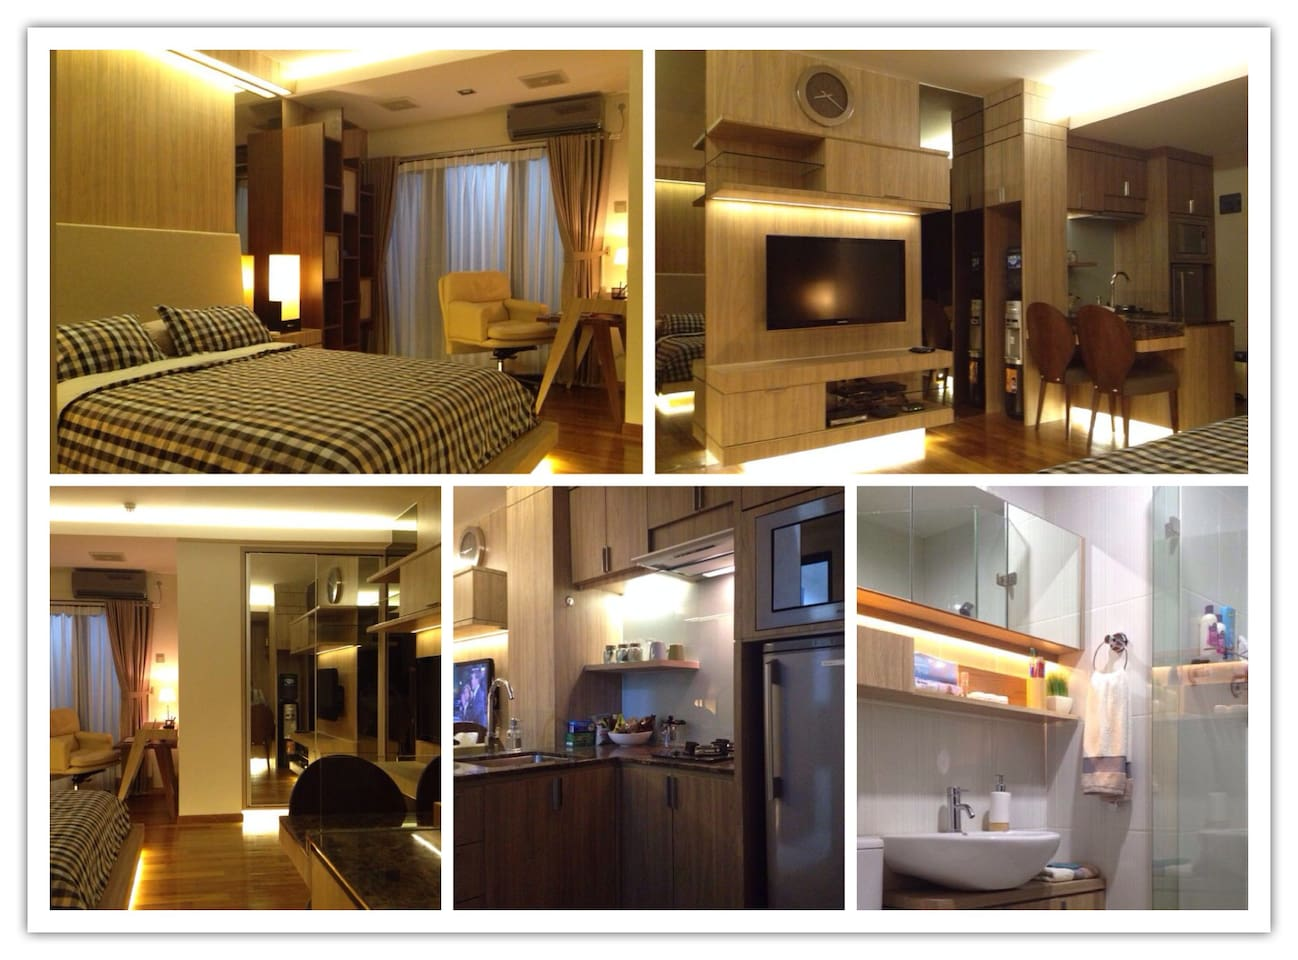 Retro & Lux Apt In The Heart of Jkt